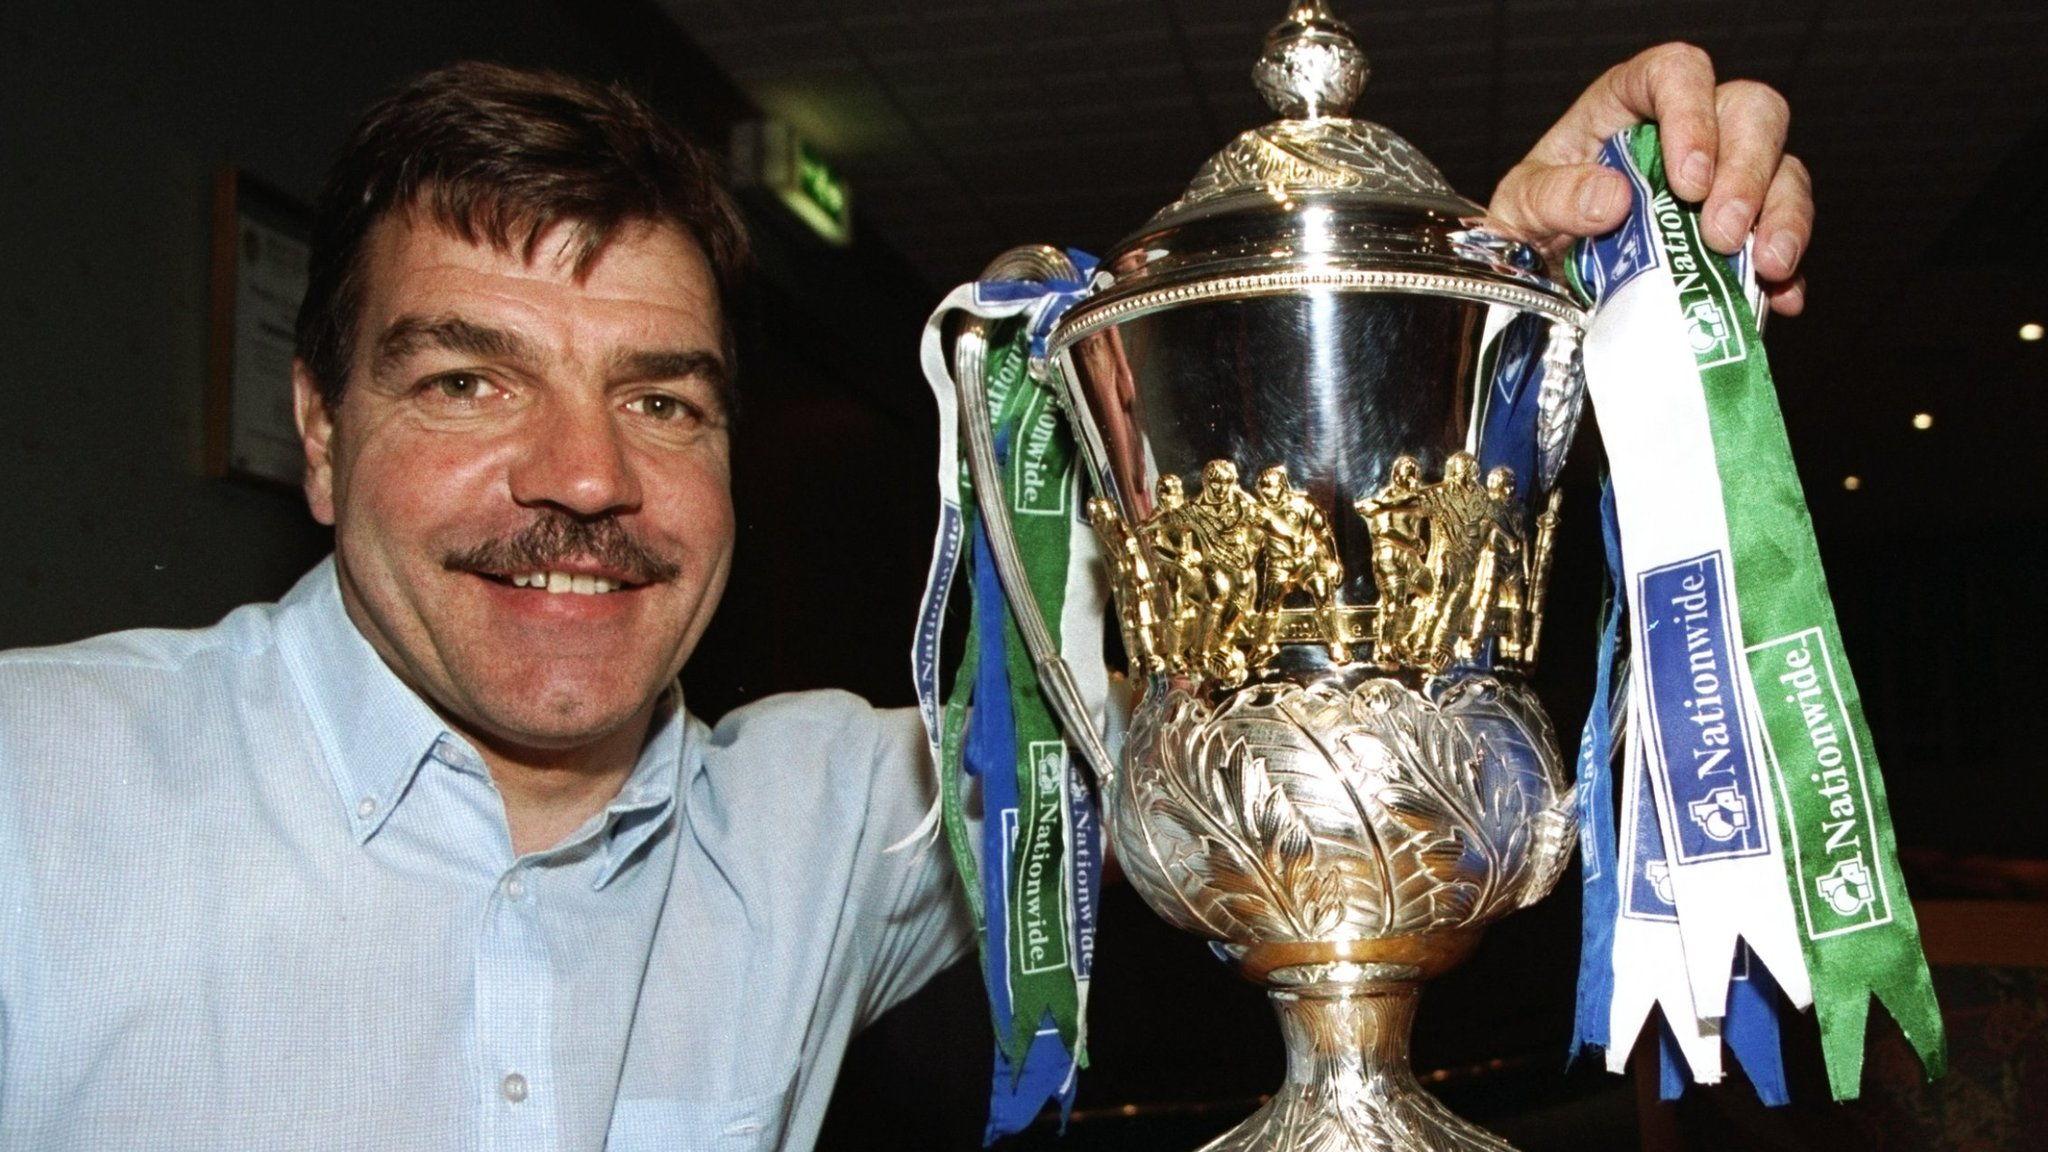 Sam Allardyce: Sheep testicles and toilet races - the England manager's early years